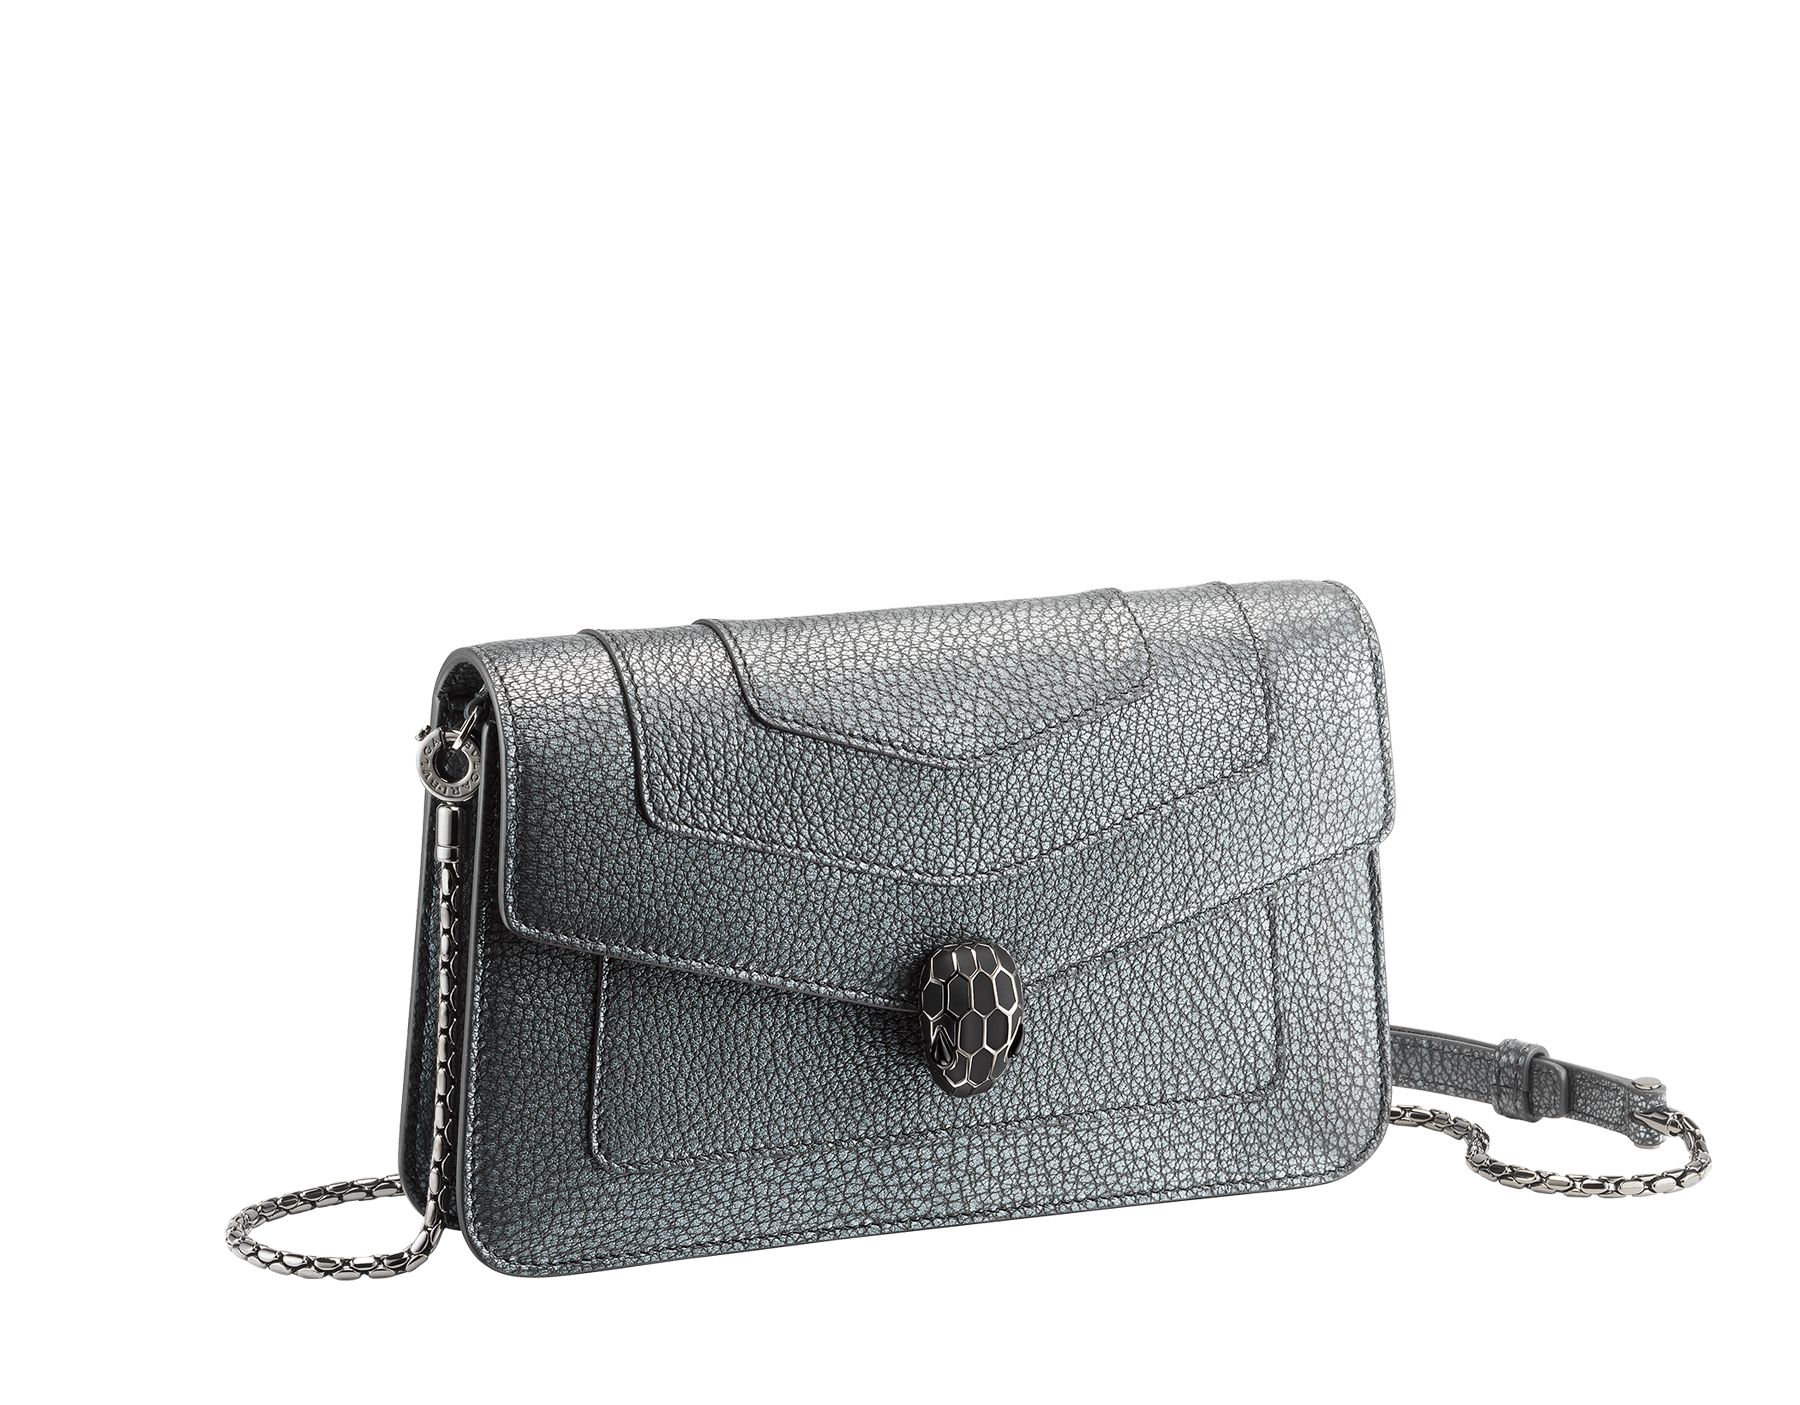 """Serpenti Forever"" new chain wallet in Charcoal Diamond grey goatskin with a pearled effect and black nappa leather. Brass dark ruthenium plated iconic snakehead stud closure enameled in matte and shiny black, finished with black onyx eyes. SEA-CHAINPOCHETTE-PSL image 1"